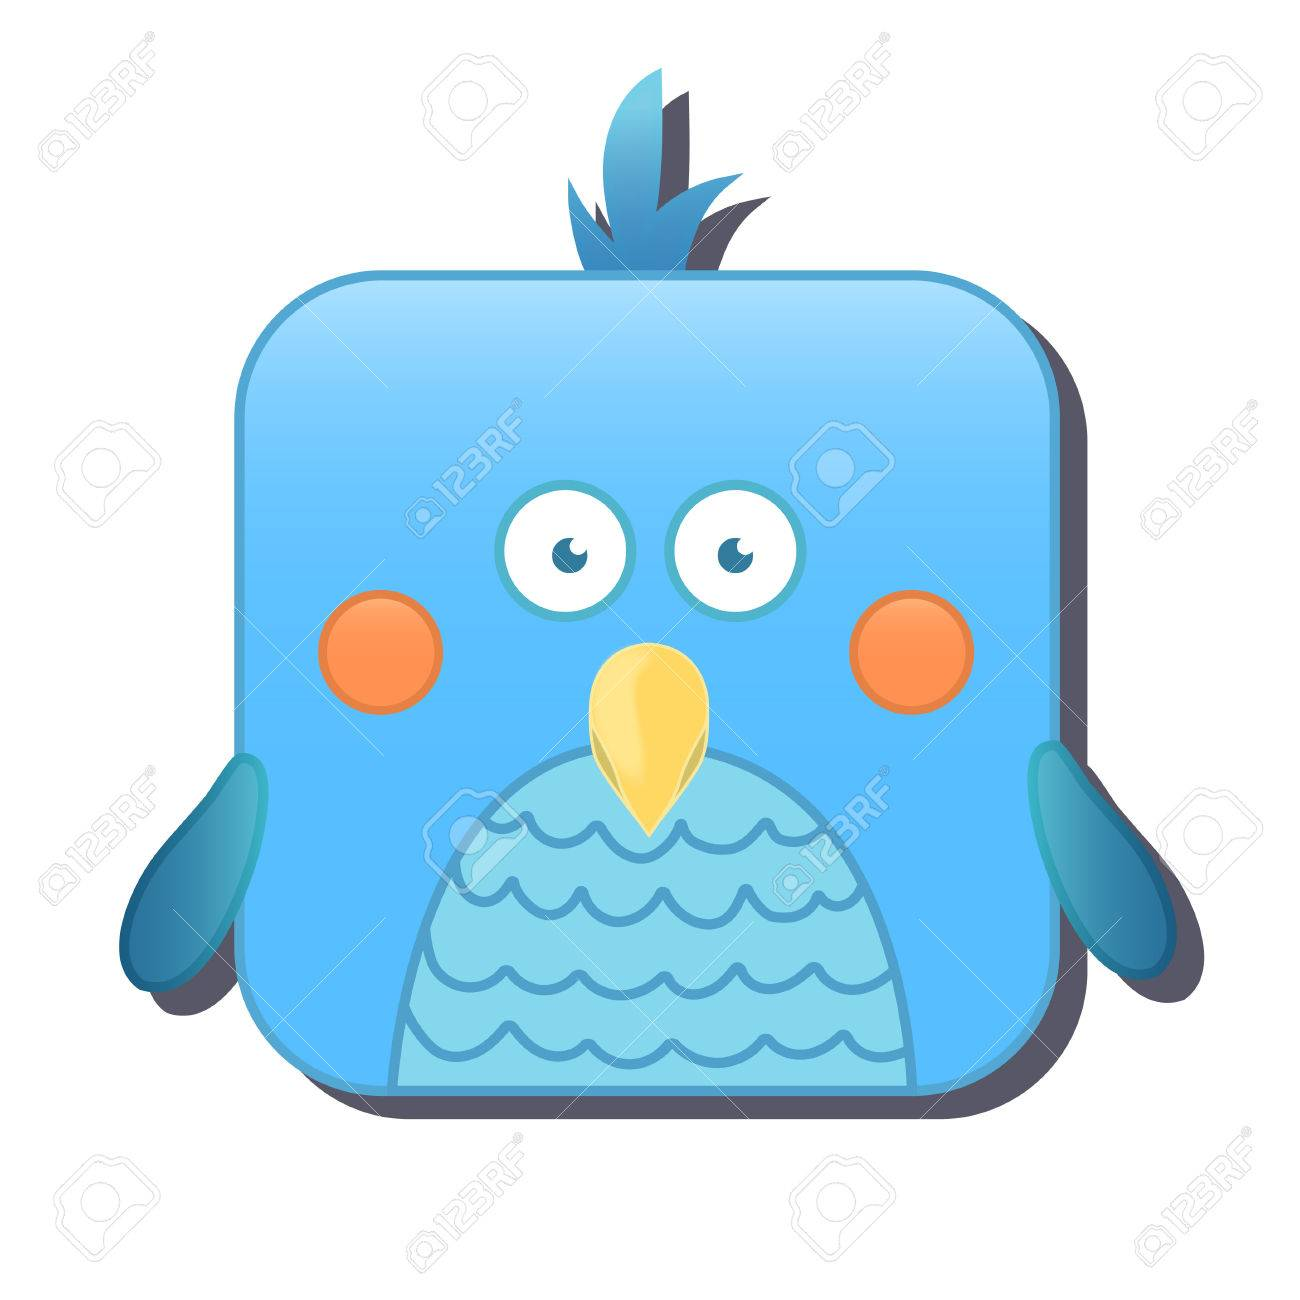 Cute square bird, parrot  illustration isolated on white background